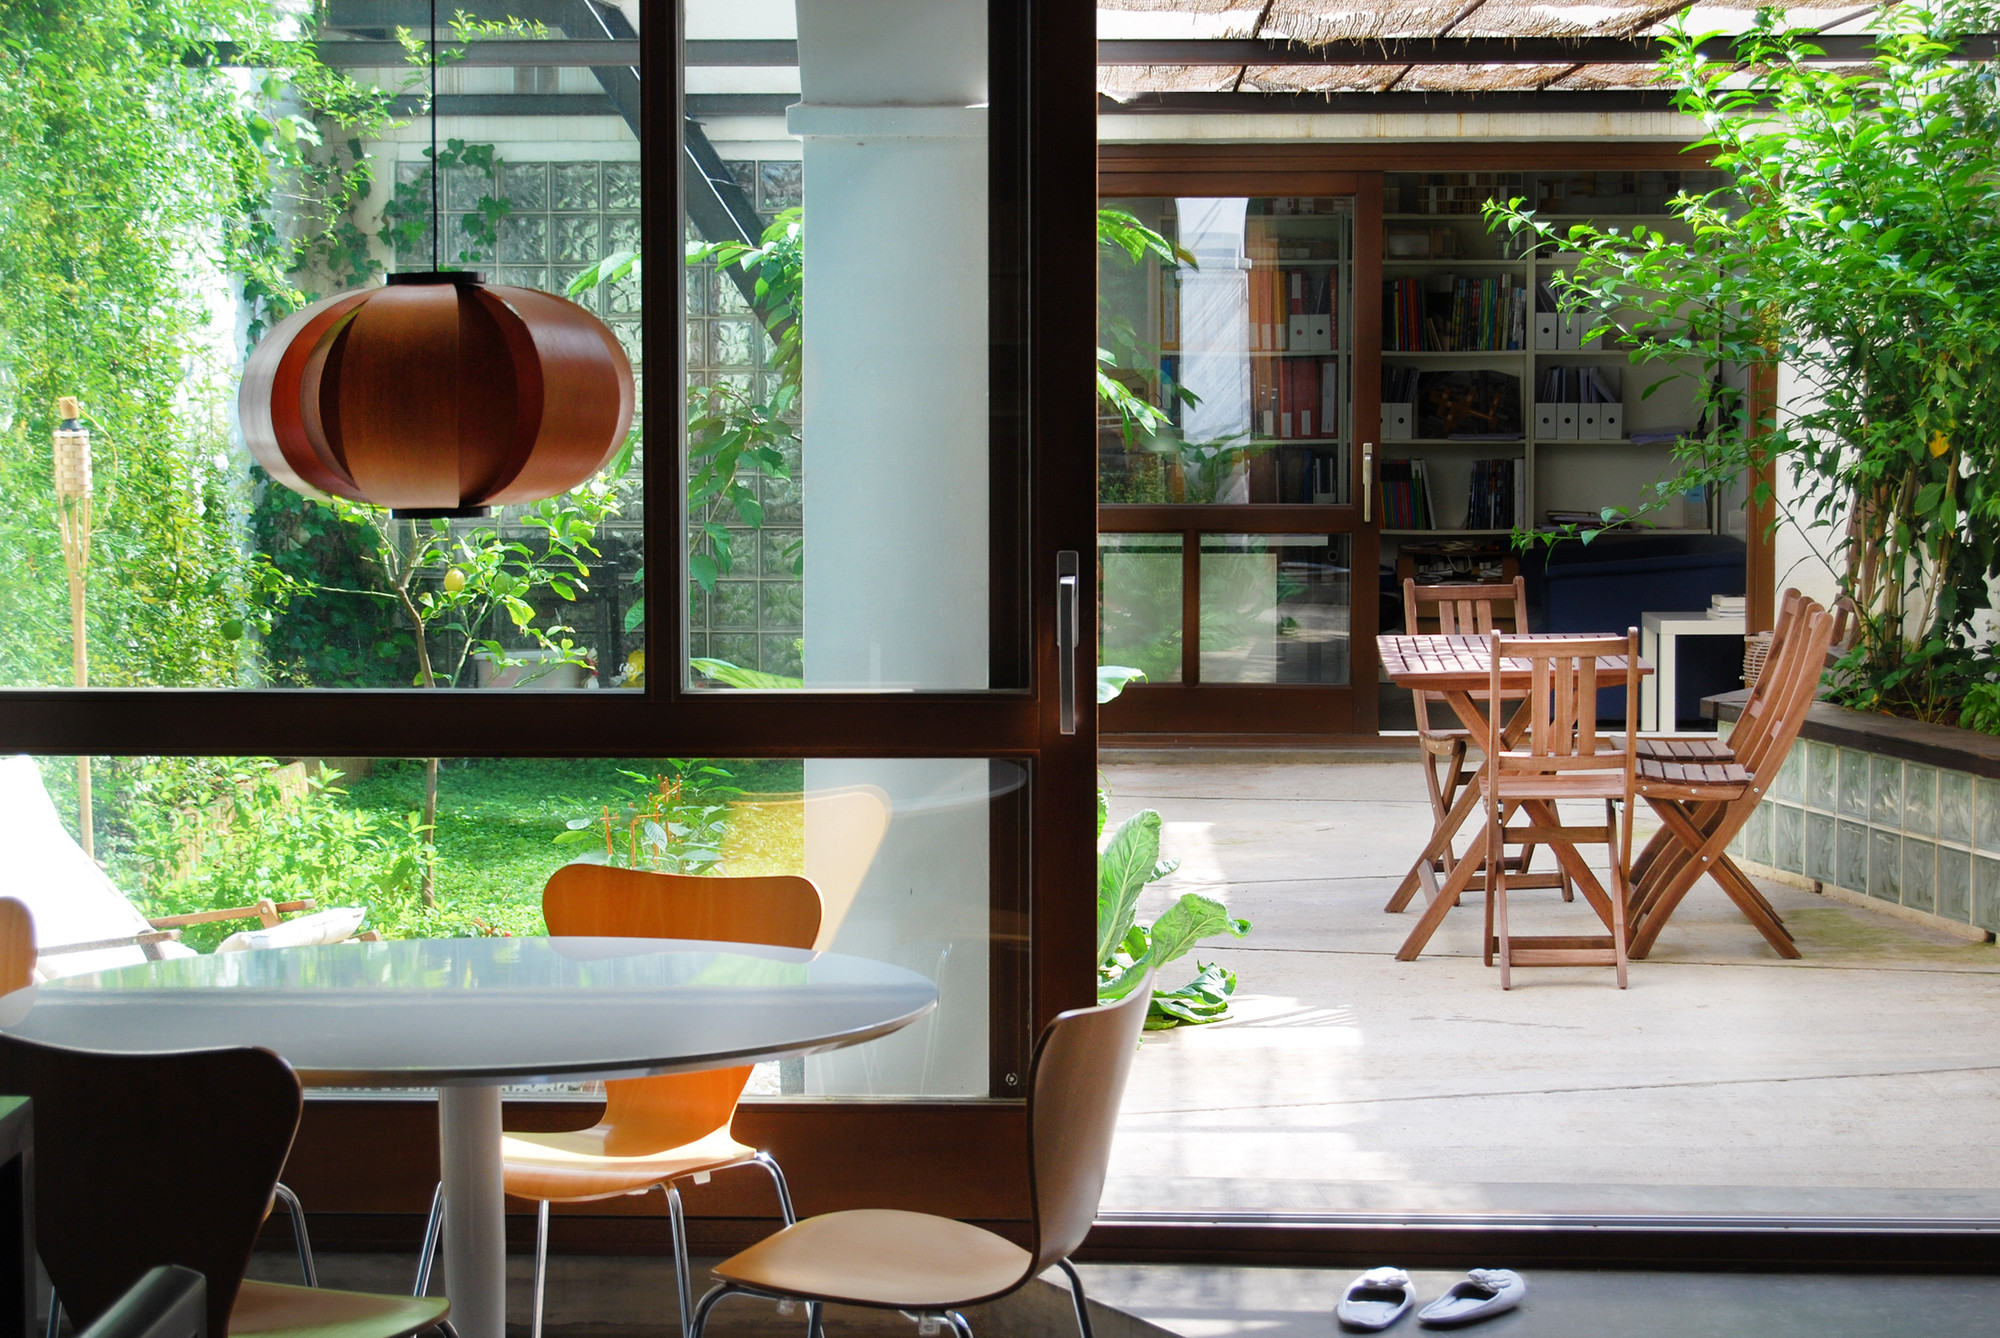 Patio House patio-house in gracia / carles enrich | archdaily